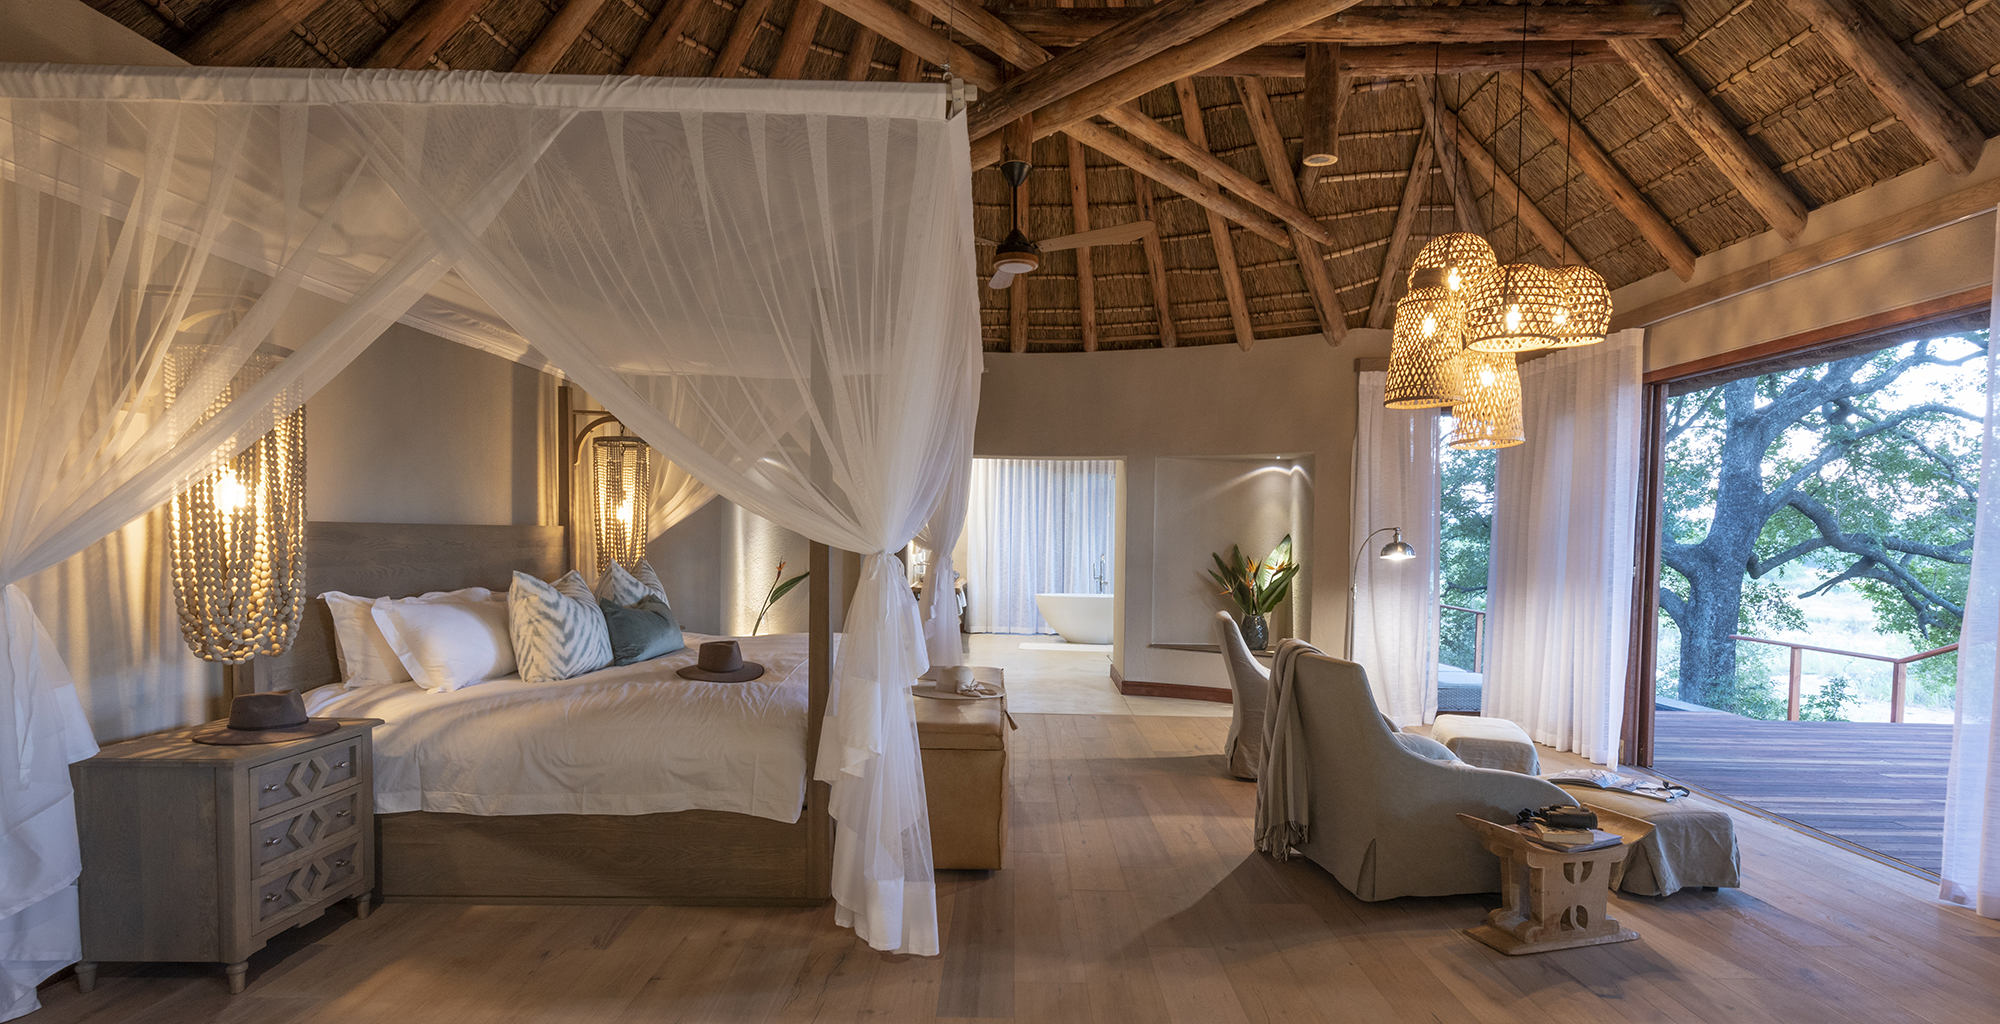 South-Africa-Dulini-River-Lodge-Bedroom